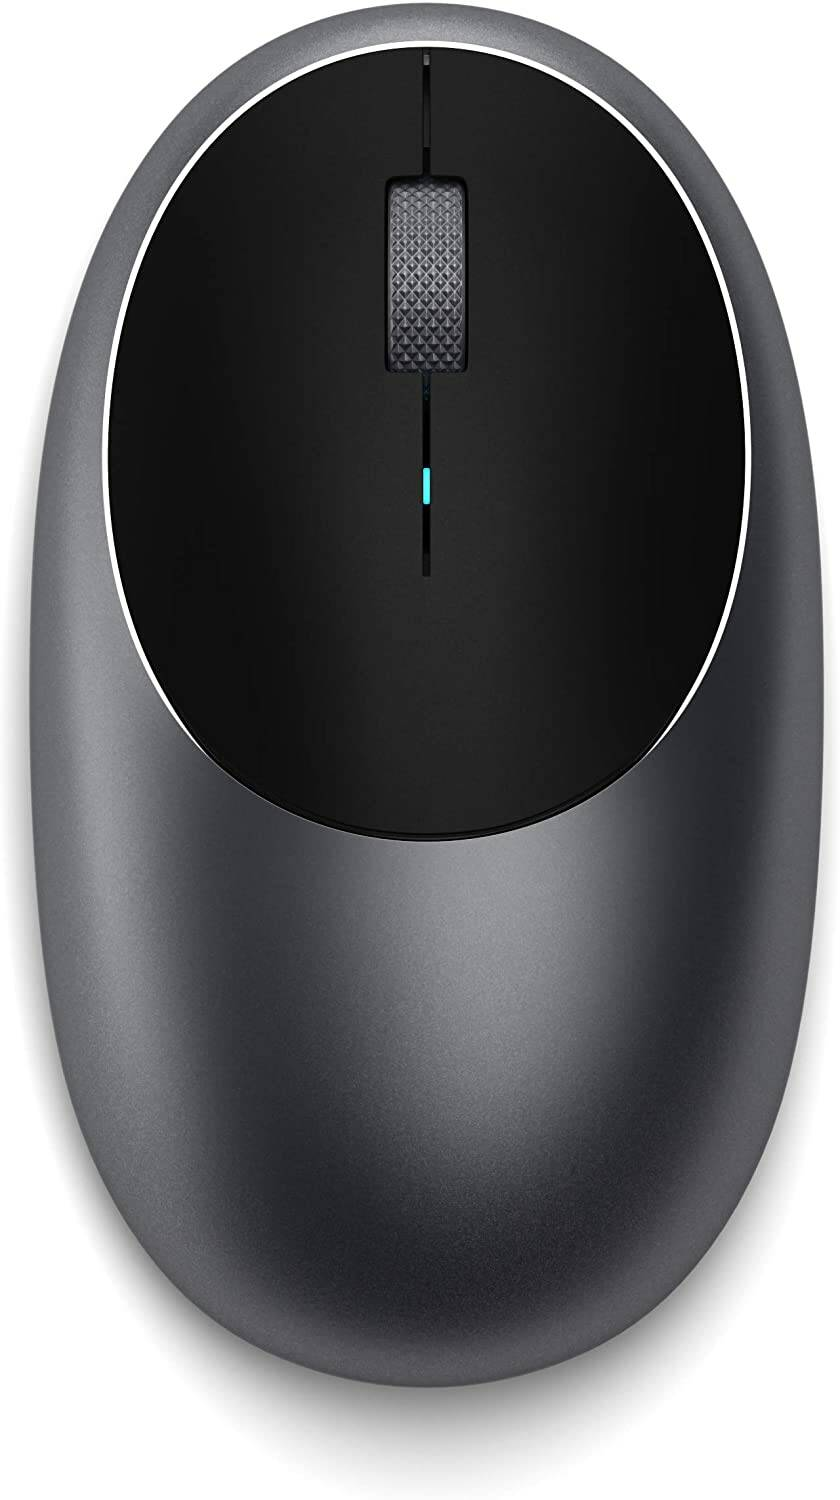 Satechi Mouse Wireless M1